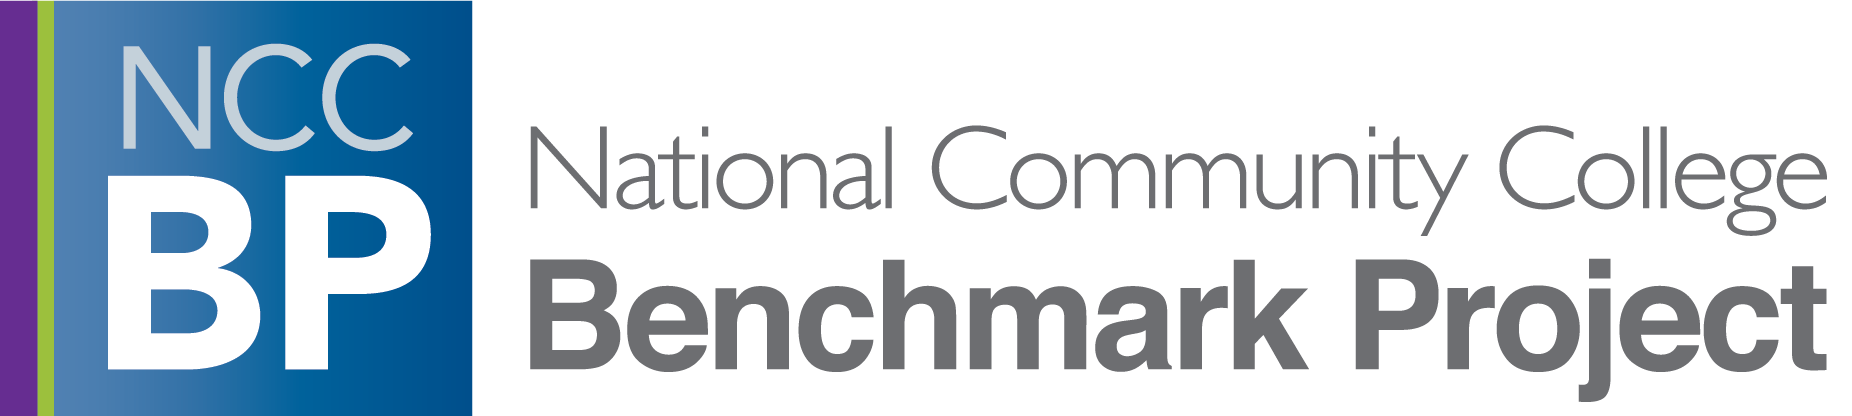 National Community College Benchmark Project Logo